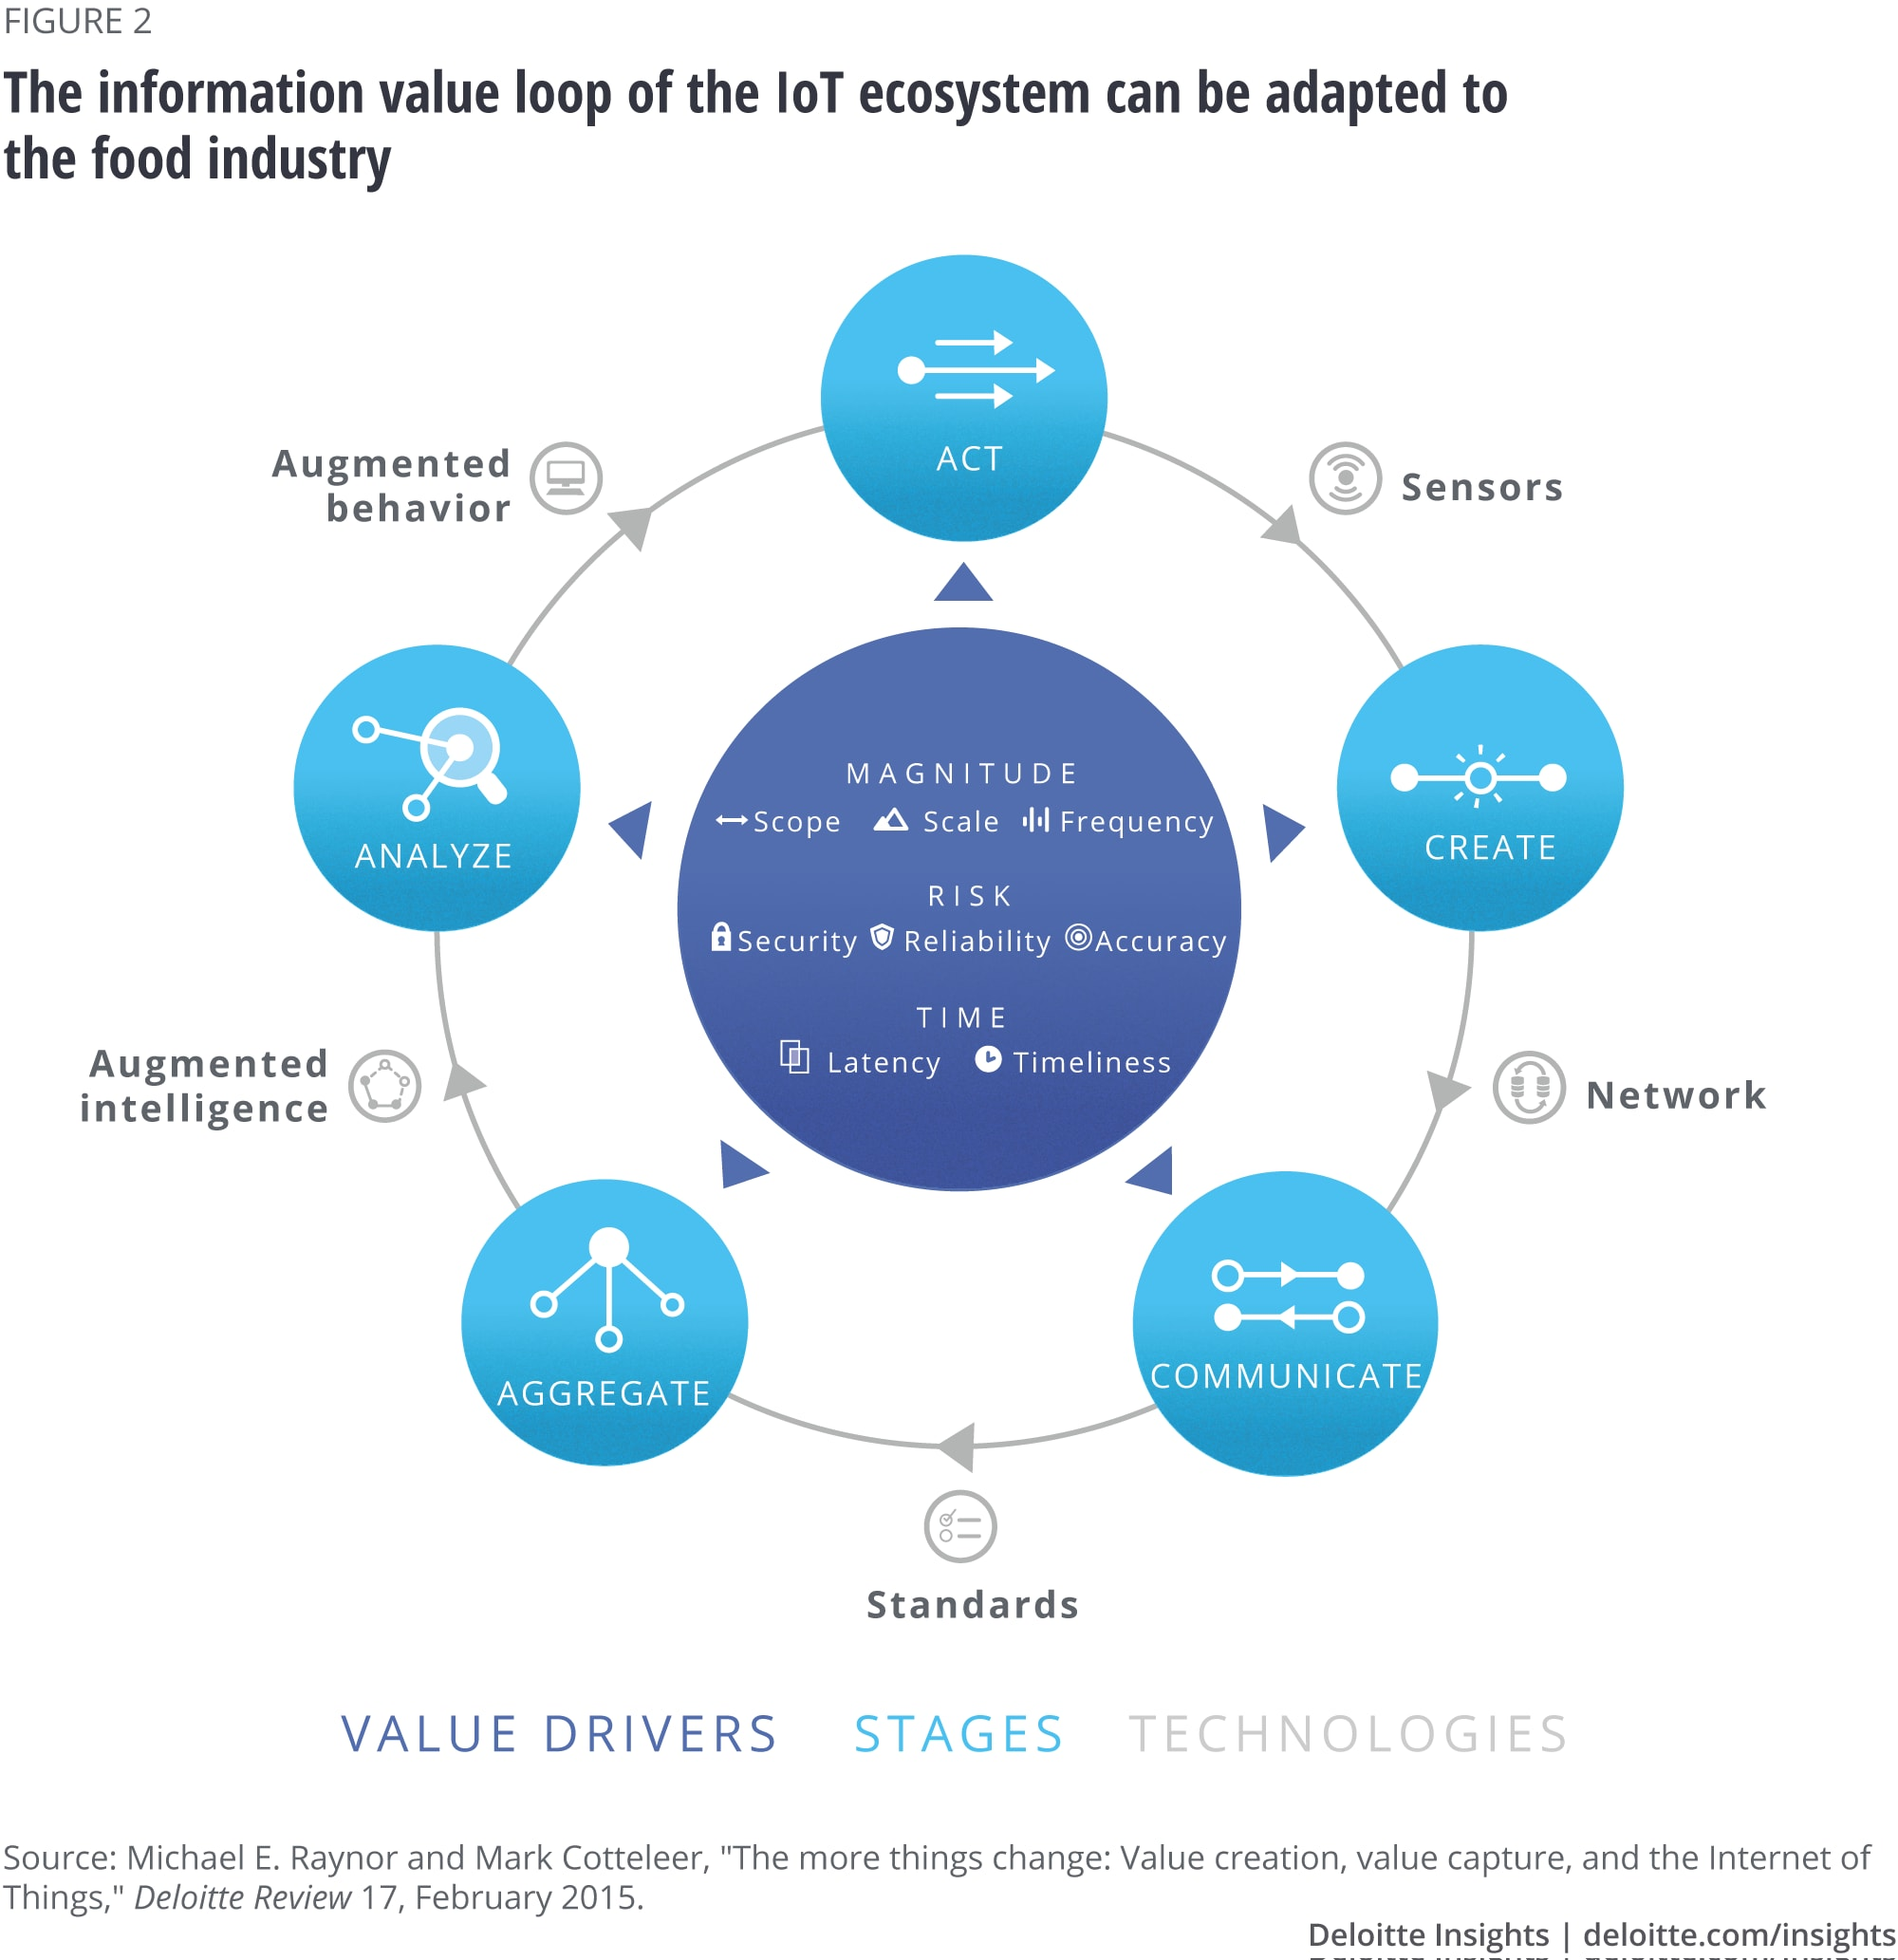 The information value loop of the IoT ecosystem can be adapted to the food industry